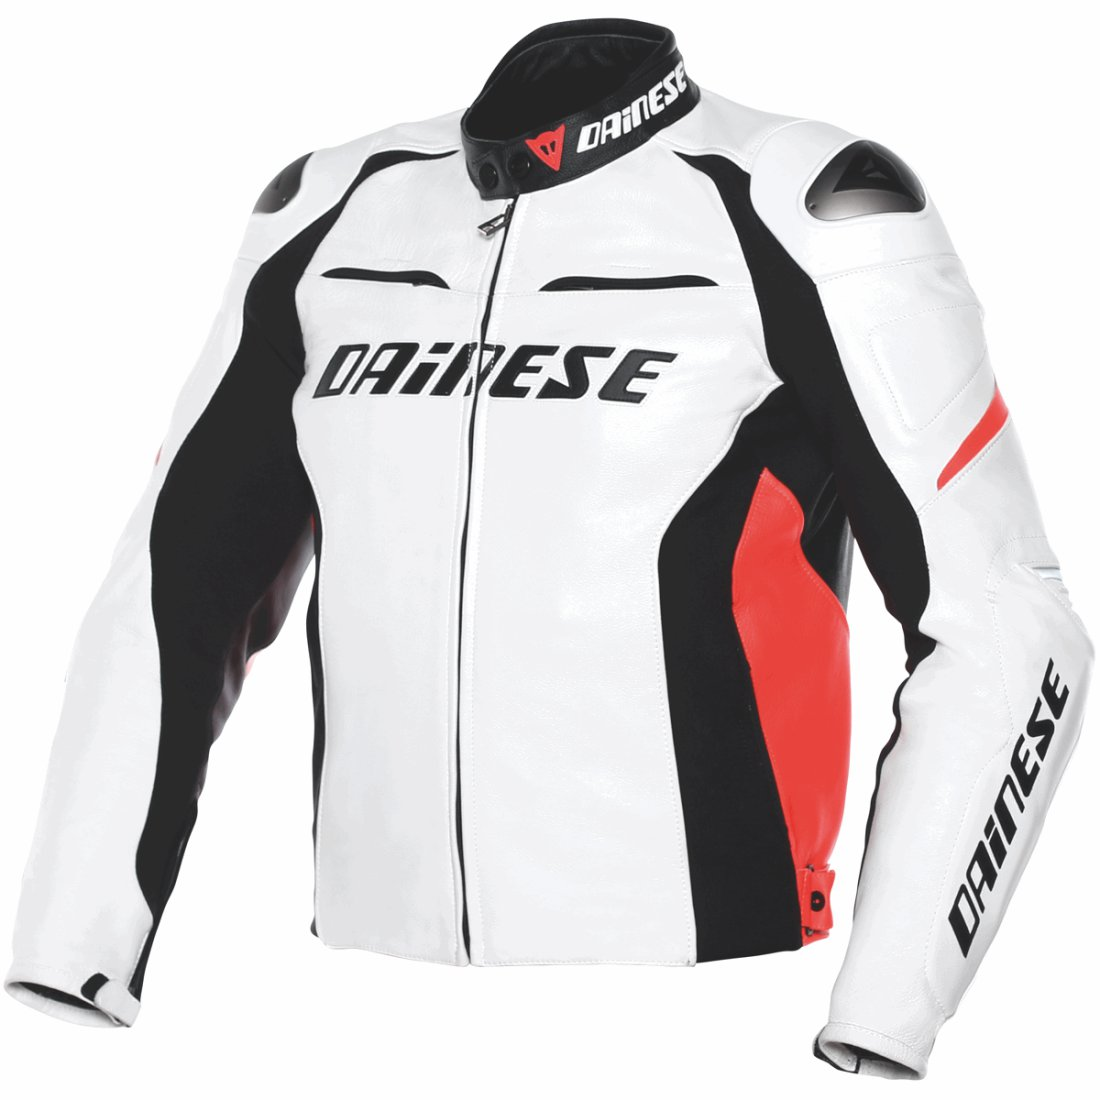 Chaqueta Dainese Racing D1 Estiva White Black Red